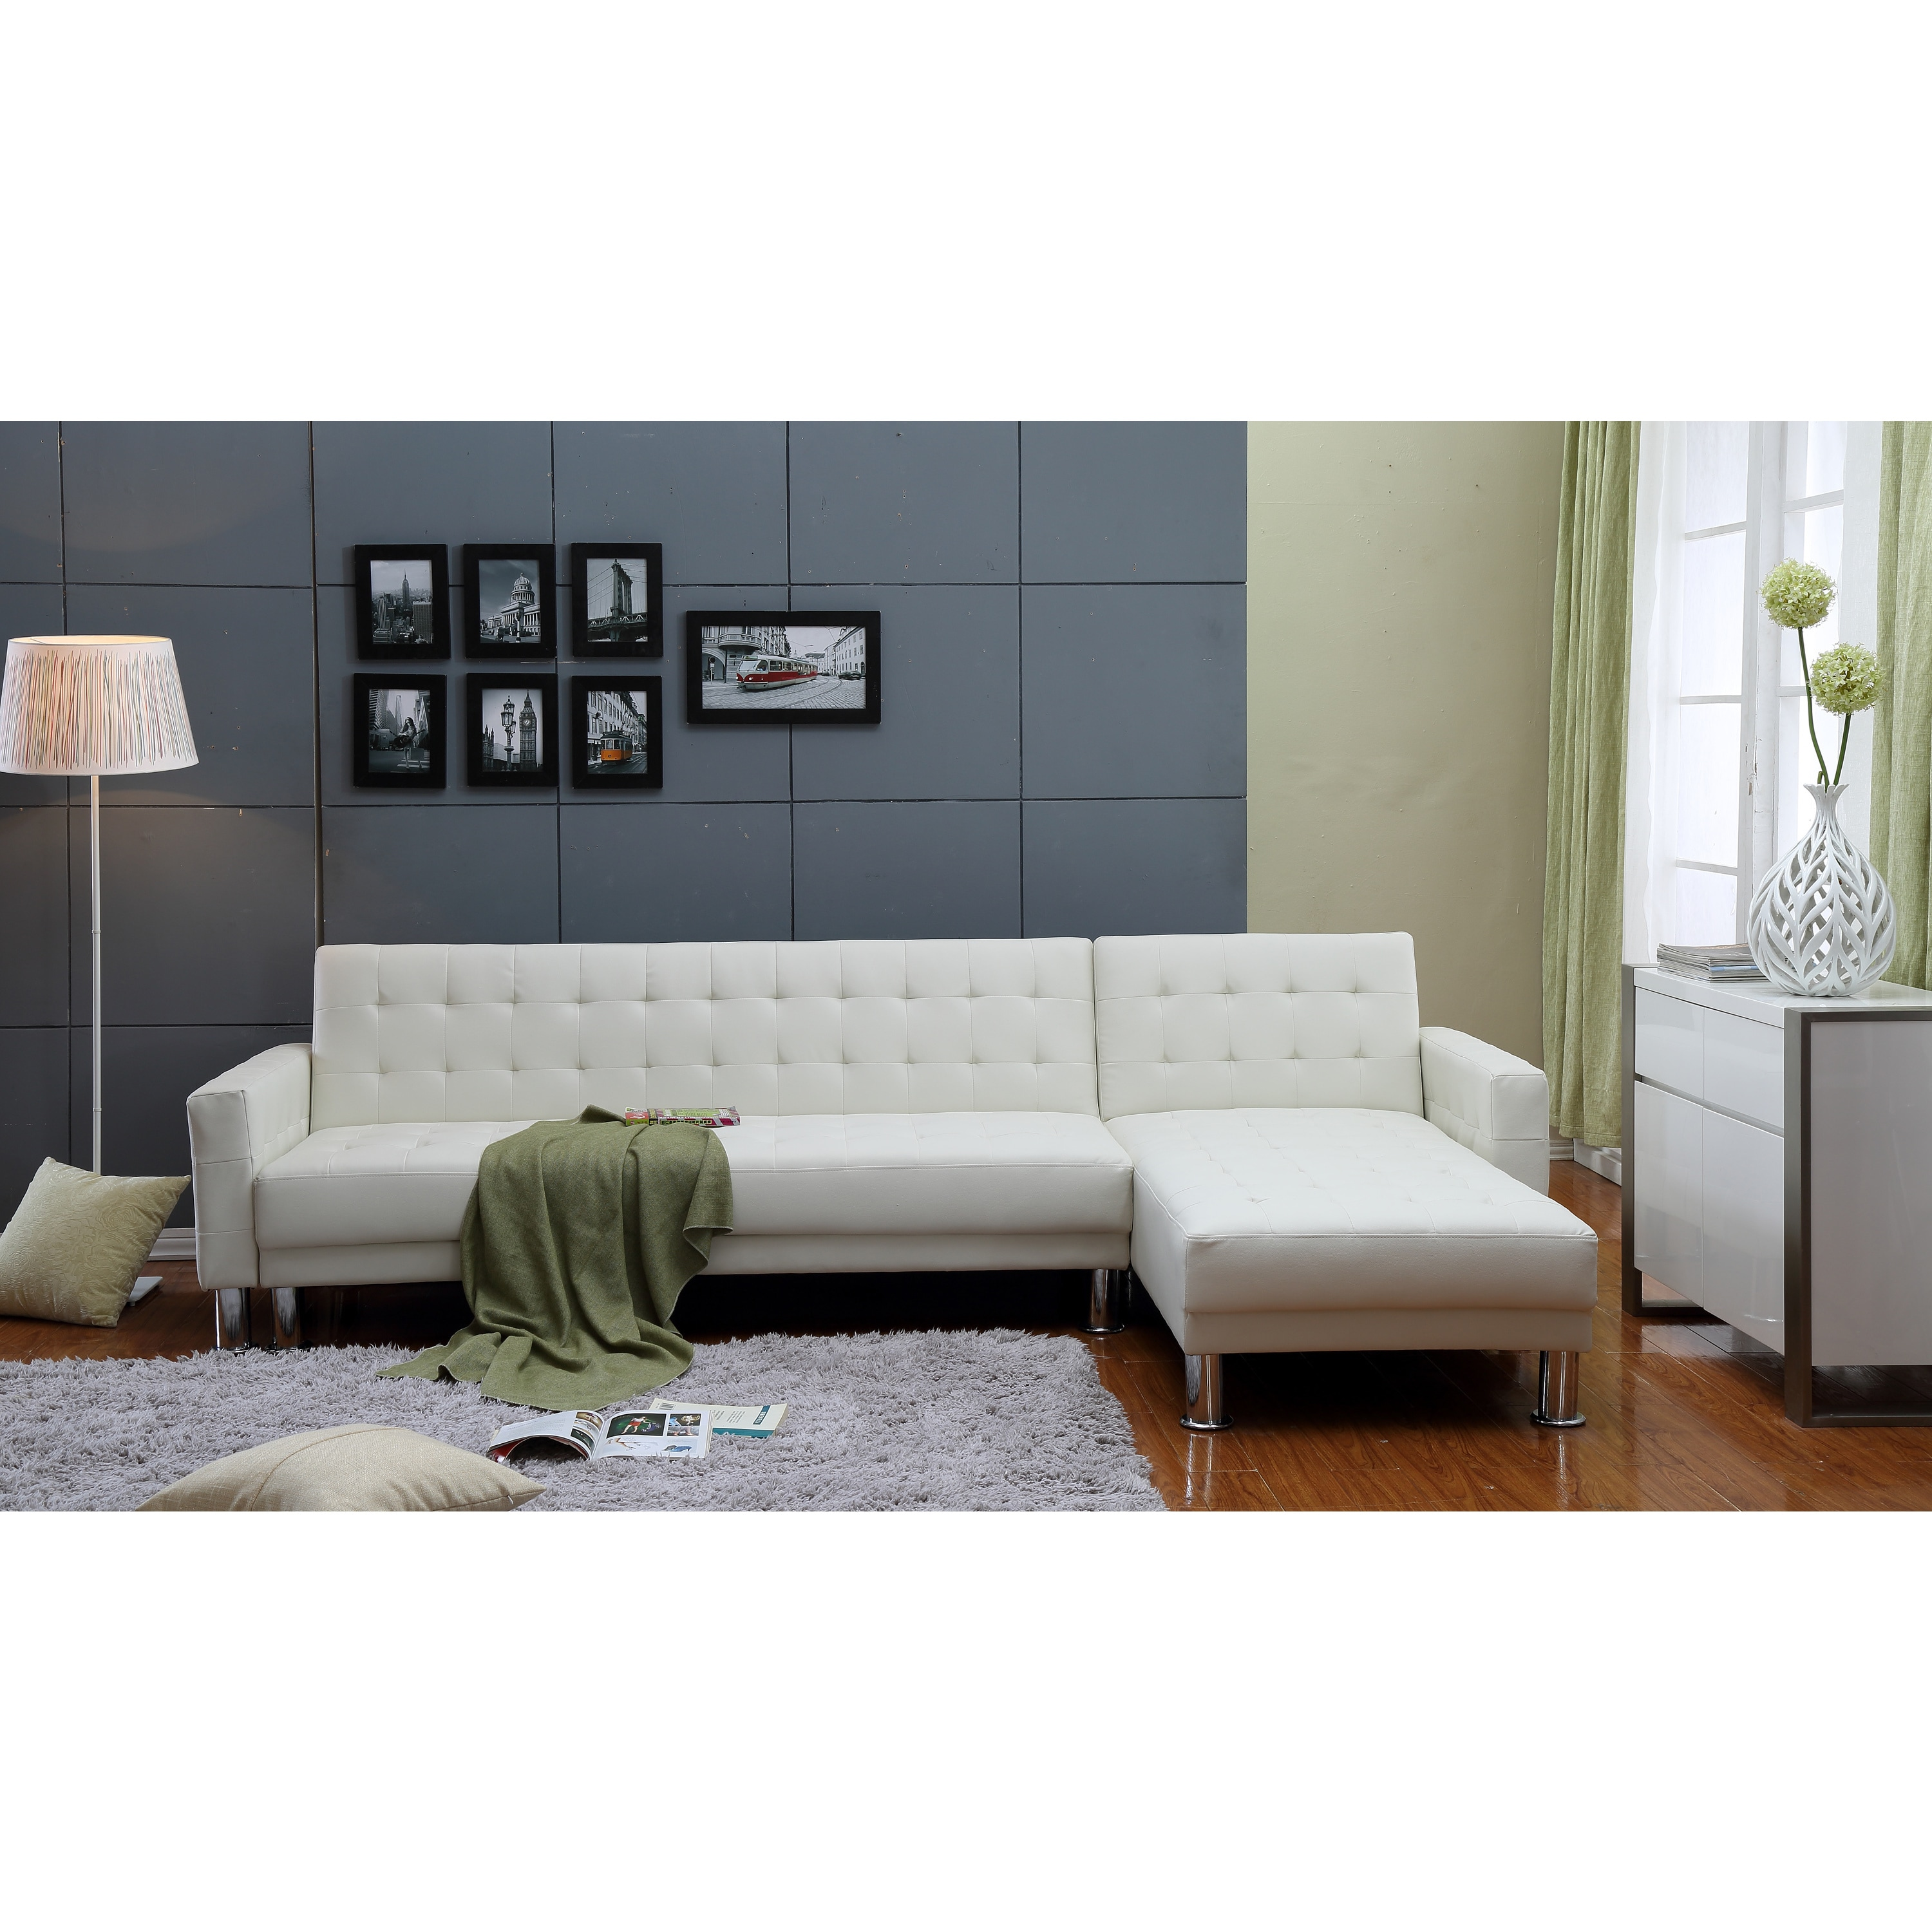 the hom marsden 2 piece white tufted bi cast leather sectional sofa bed